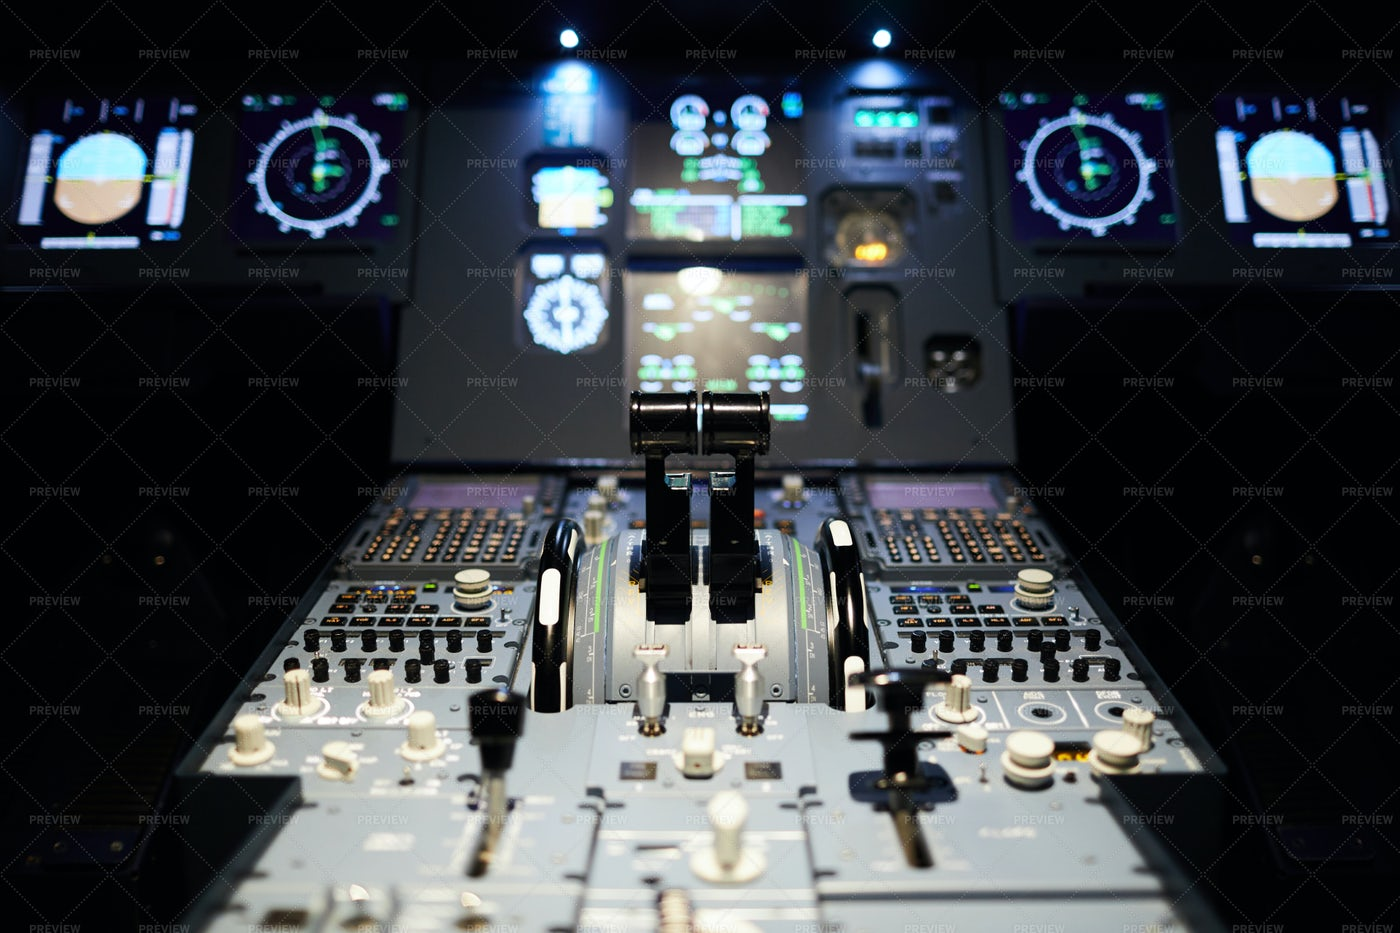 Airplane Cockpit With Illumination: Stock Photos